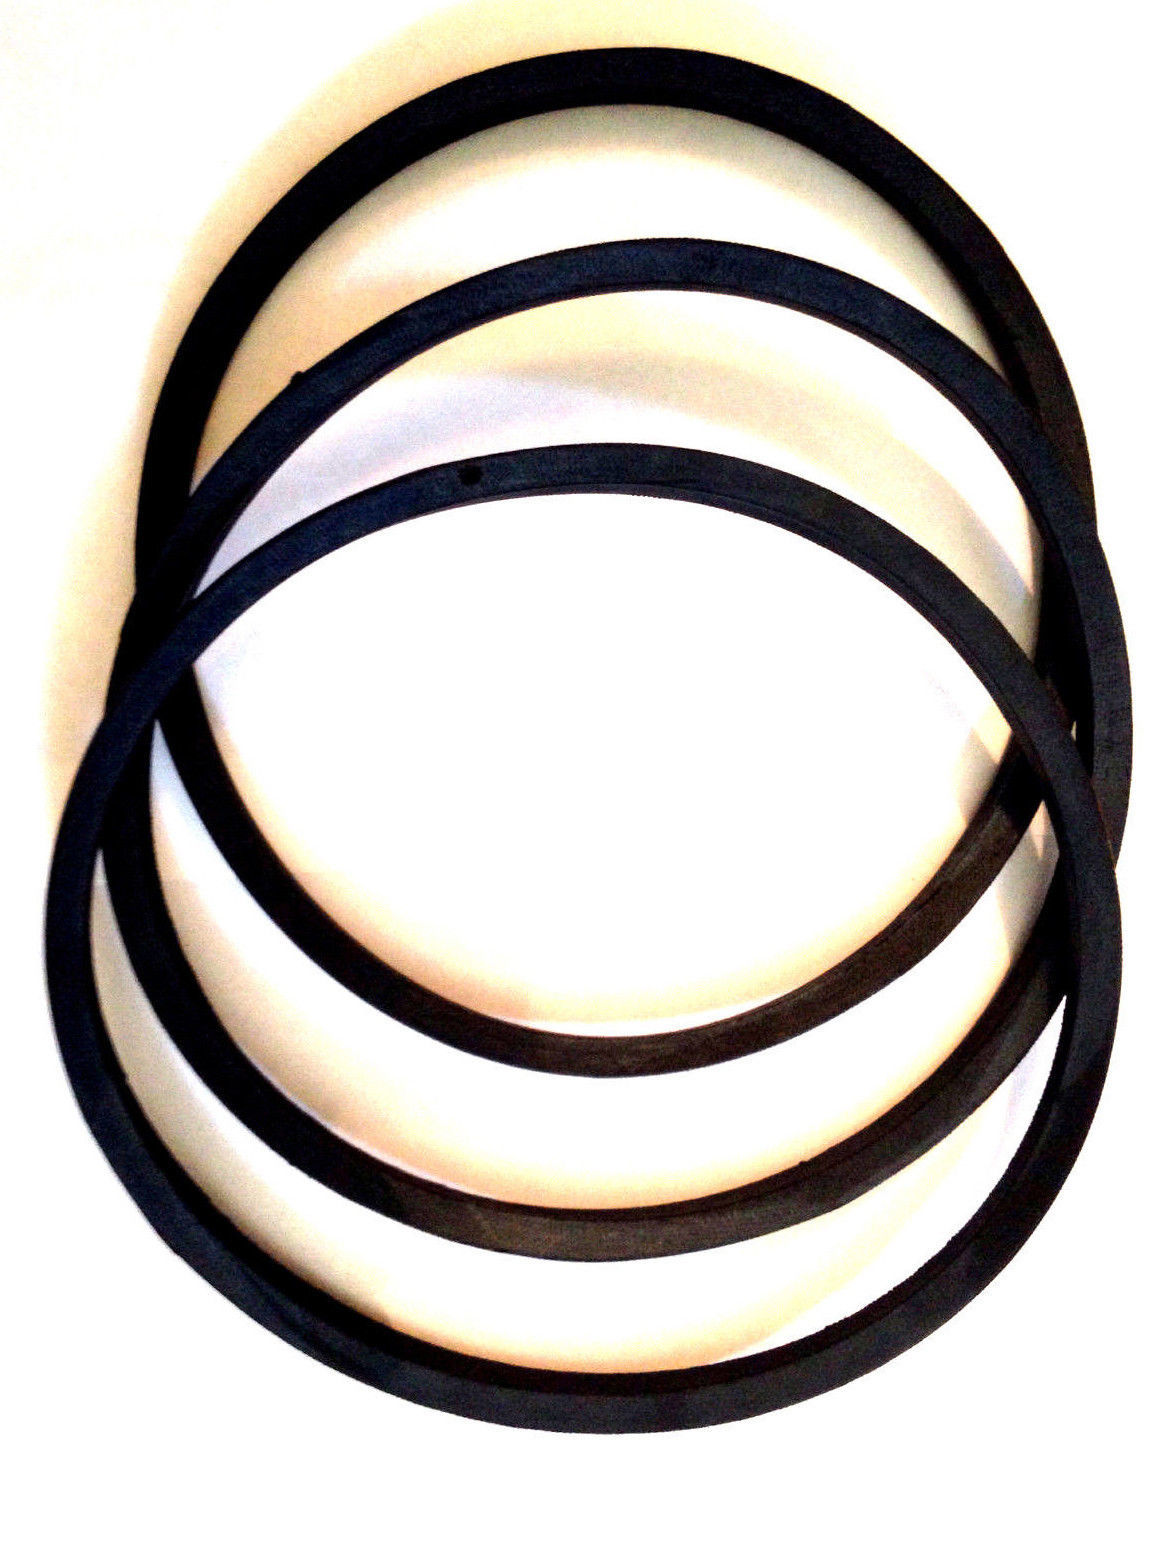 Primary image for *New 3 Replacement BELT SET* for use with Delta Rockwell  TS 34-450 34-802